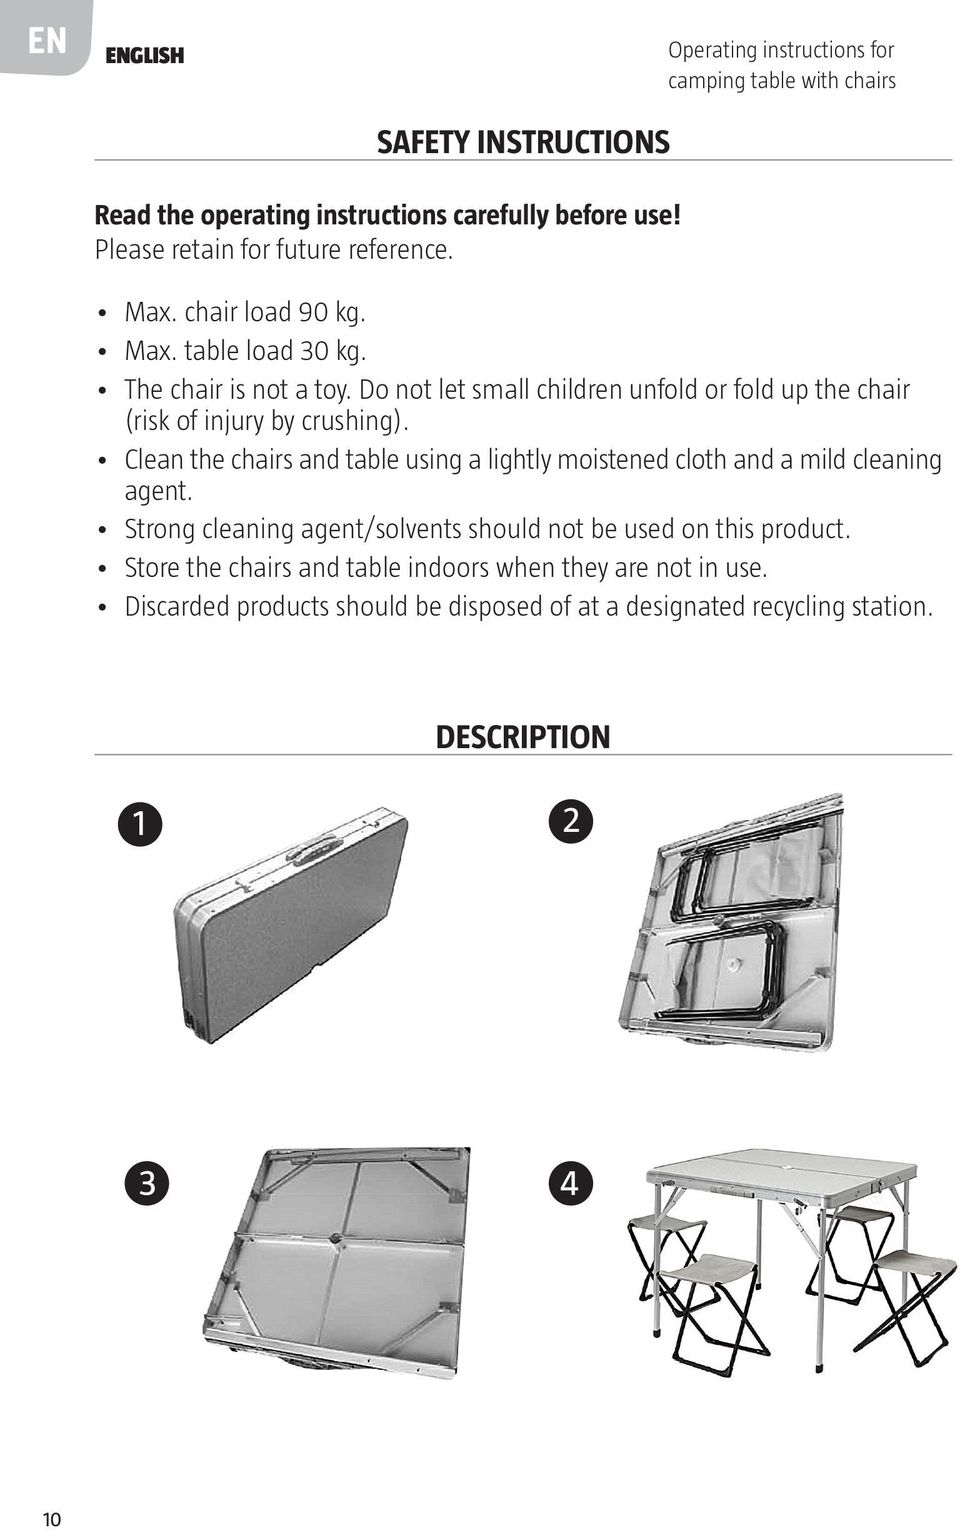 Do not let small children unfold or fold up the chair (risk of injury by crushing).